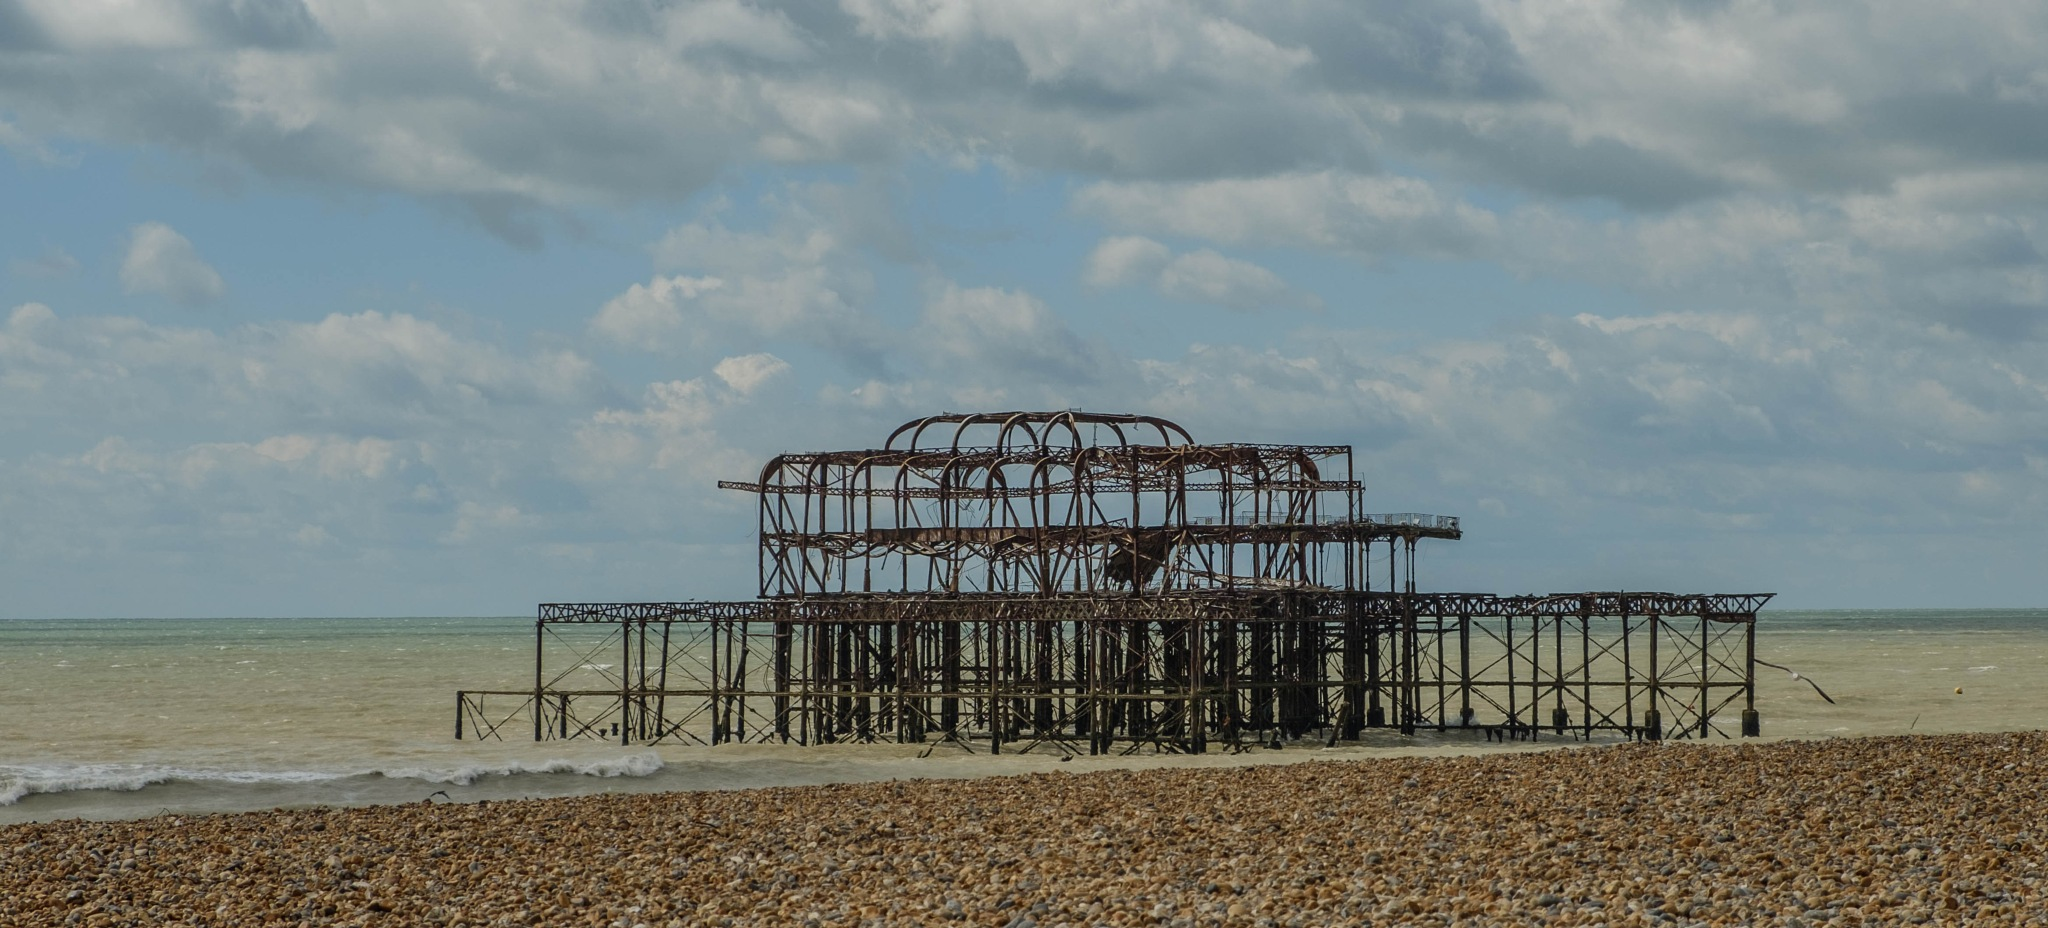 West Pier Ruins by Dave